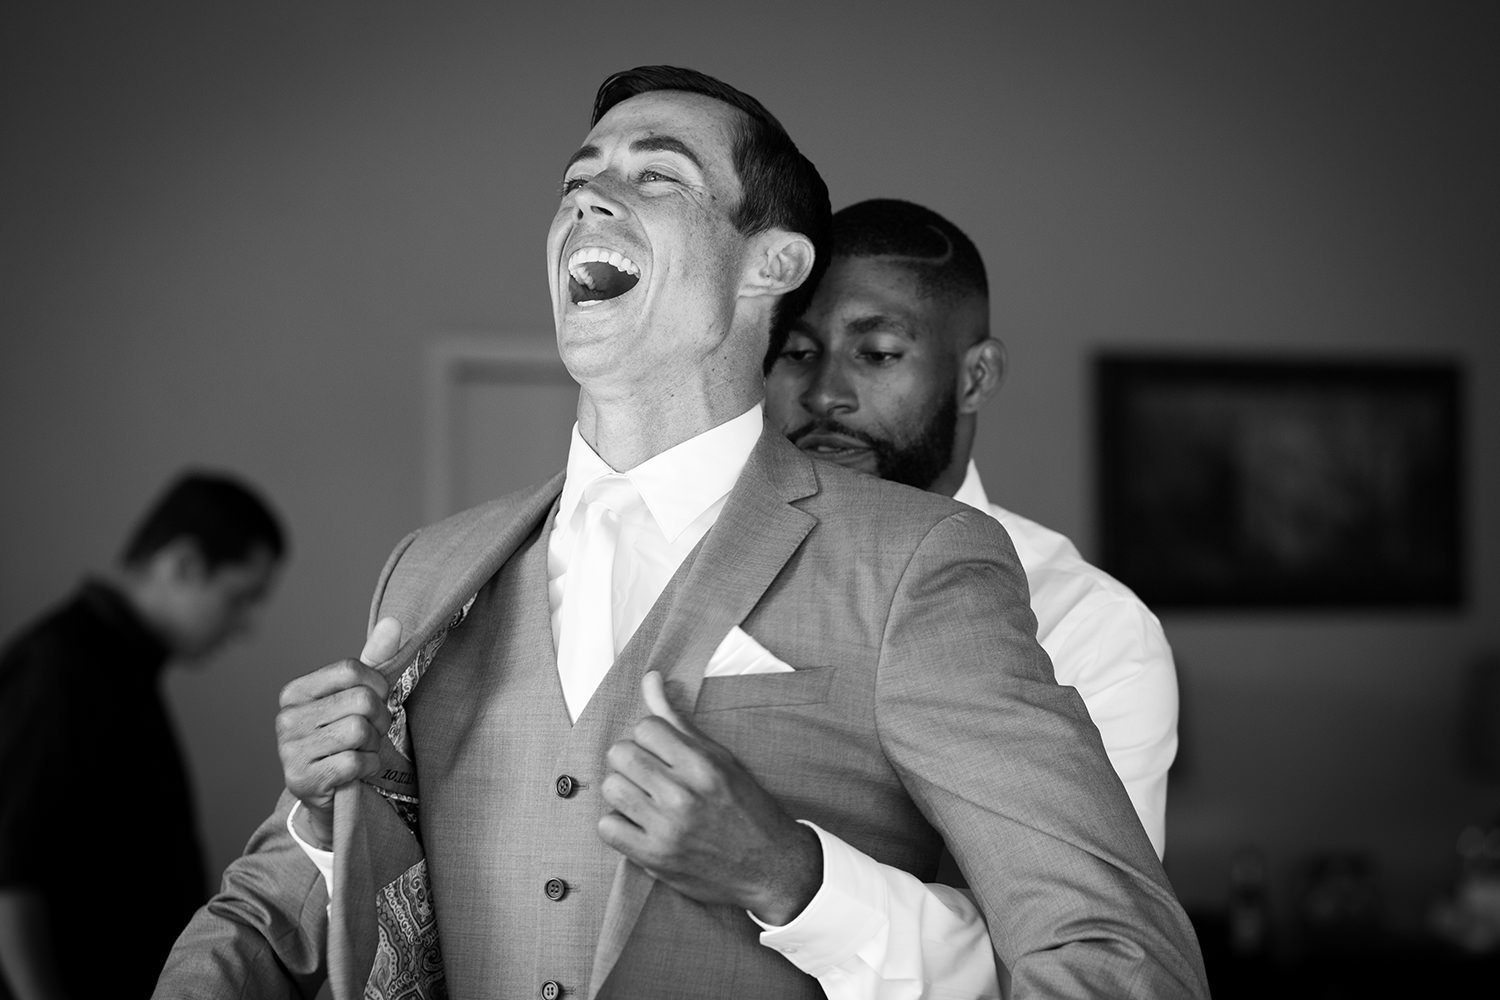 Funny moment as the groom gets ready